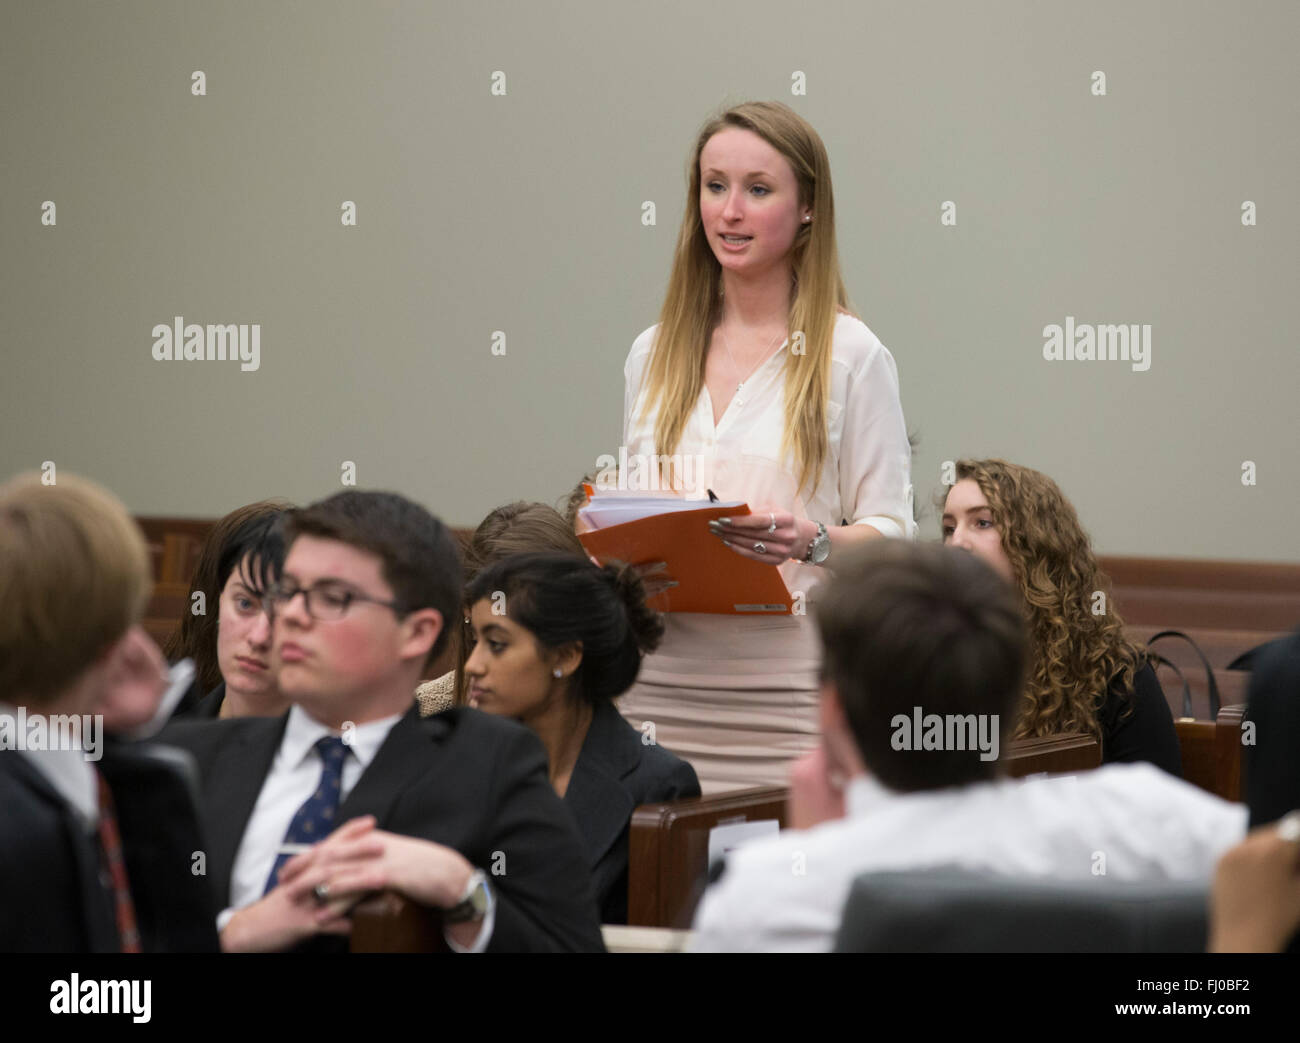 Teen girl acting as jury foreman announces her panel's verdict during high school mock trial re-enacting dating - Stock Image